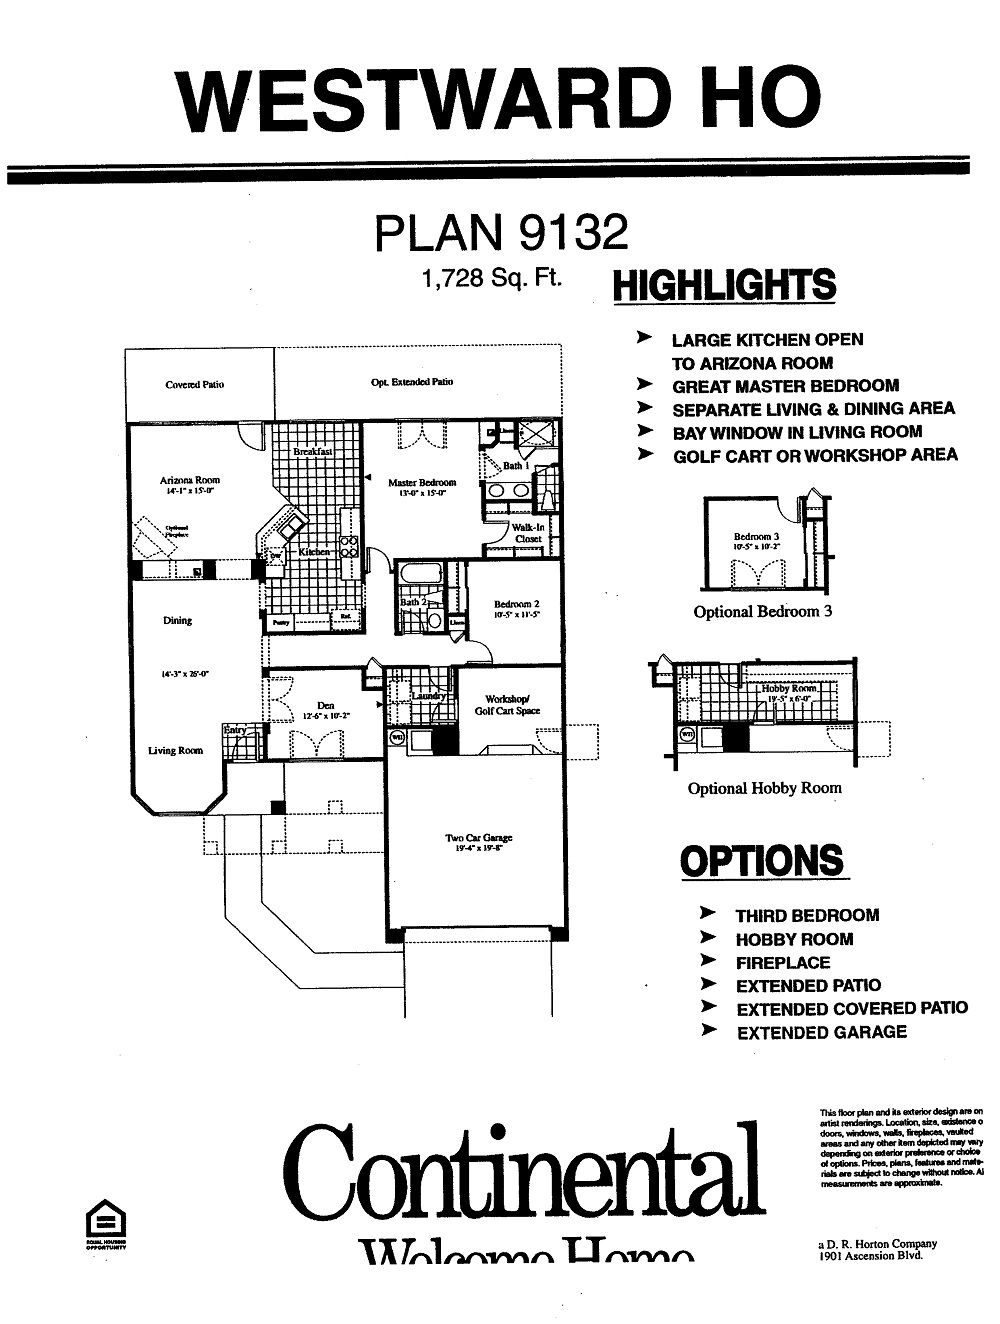 Westward Ho Floorplans in Arizona Traditions